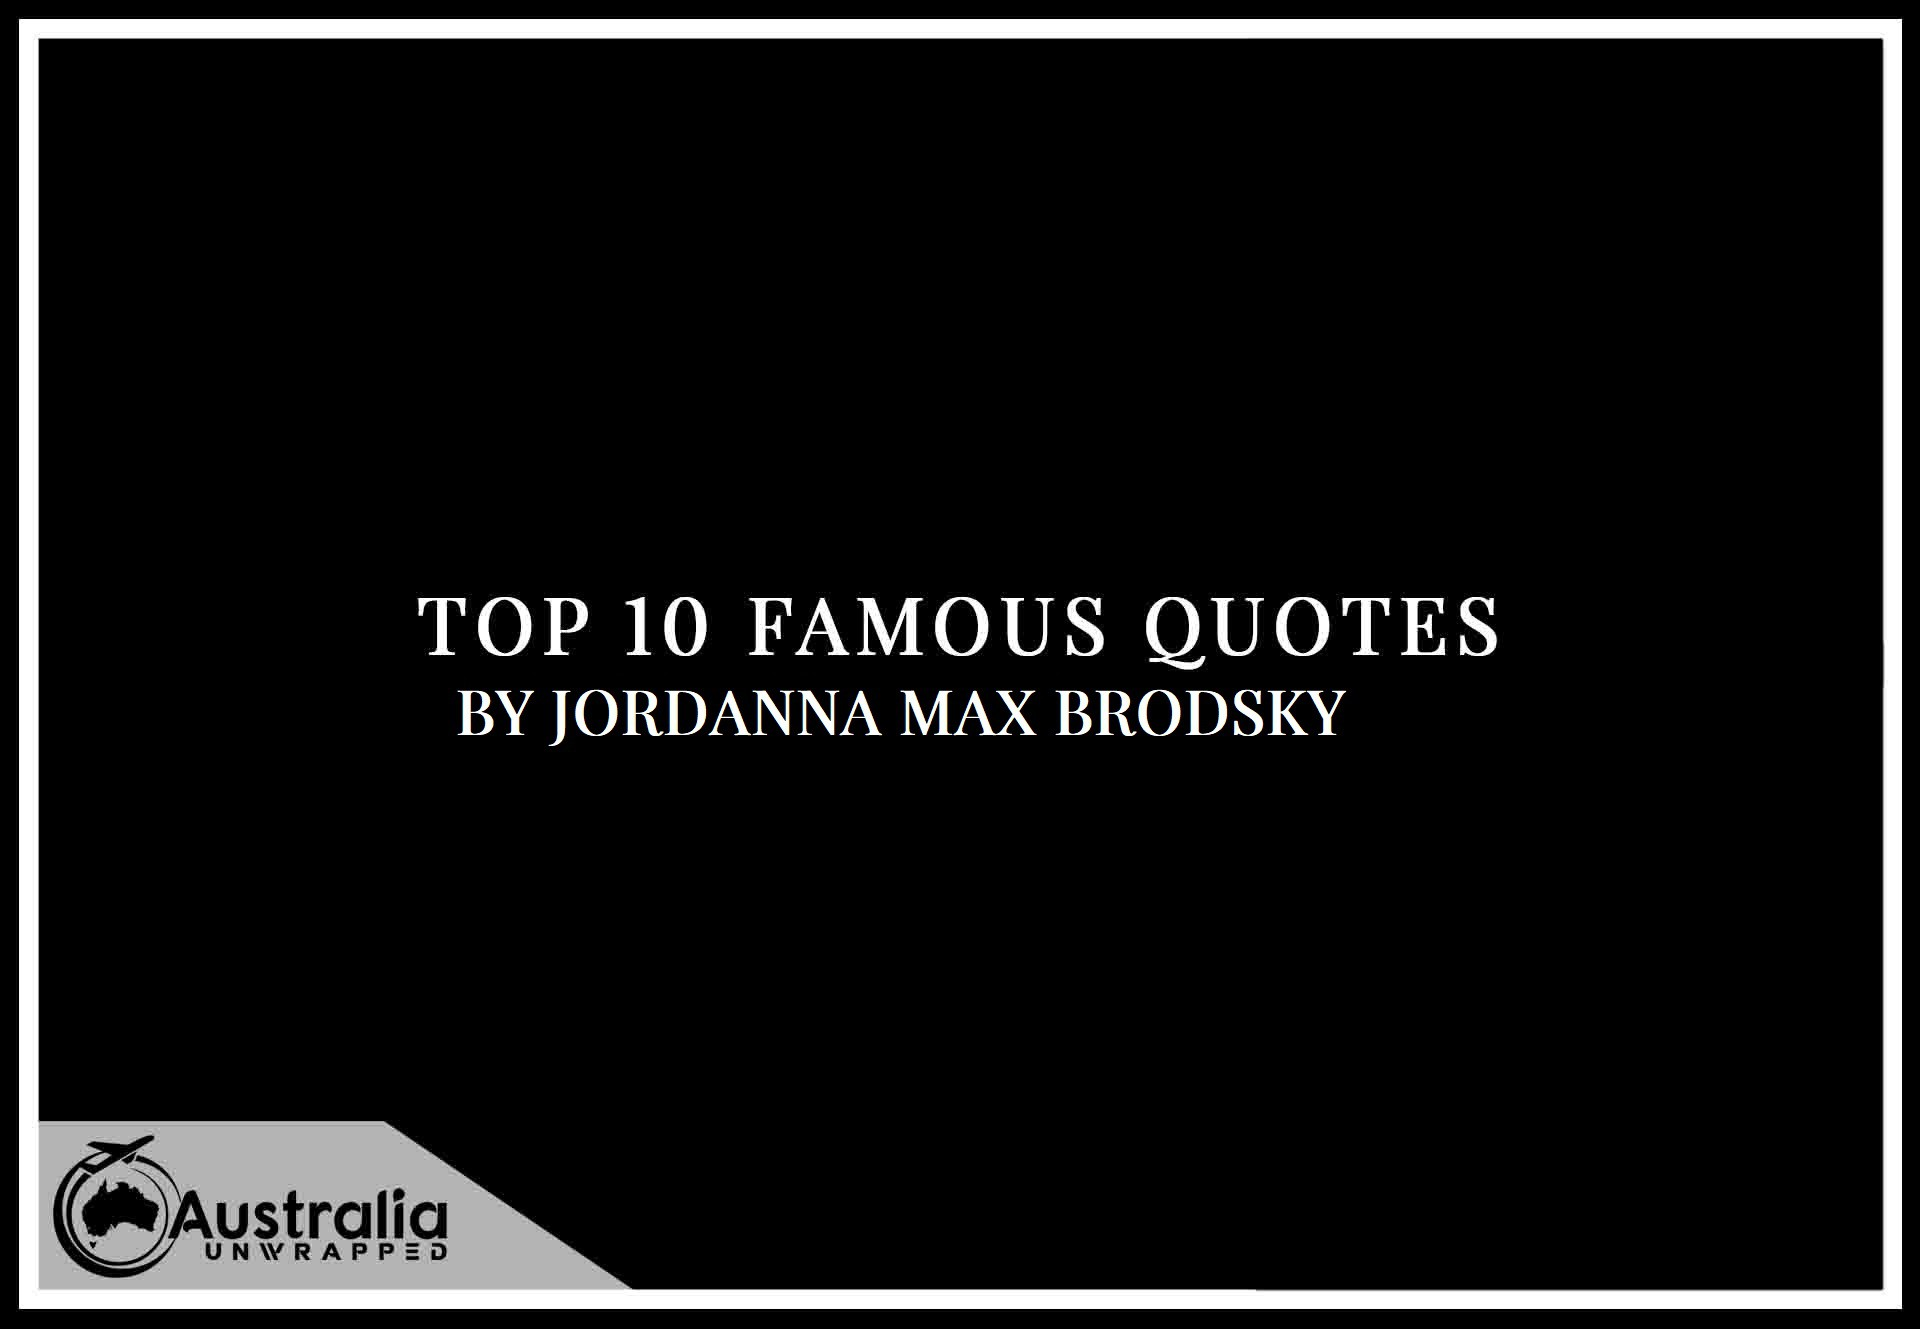 Top 10 Famous Quotes by Author Jordanna Max Brodsky